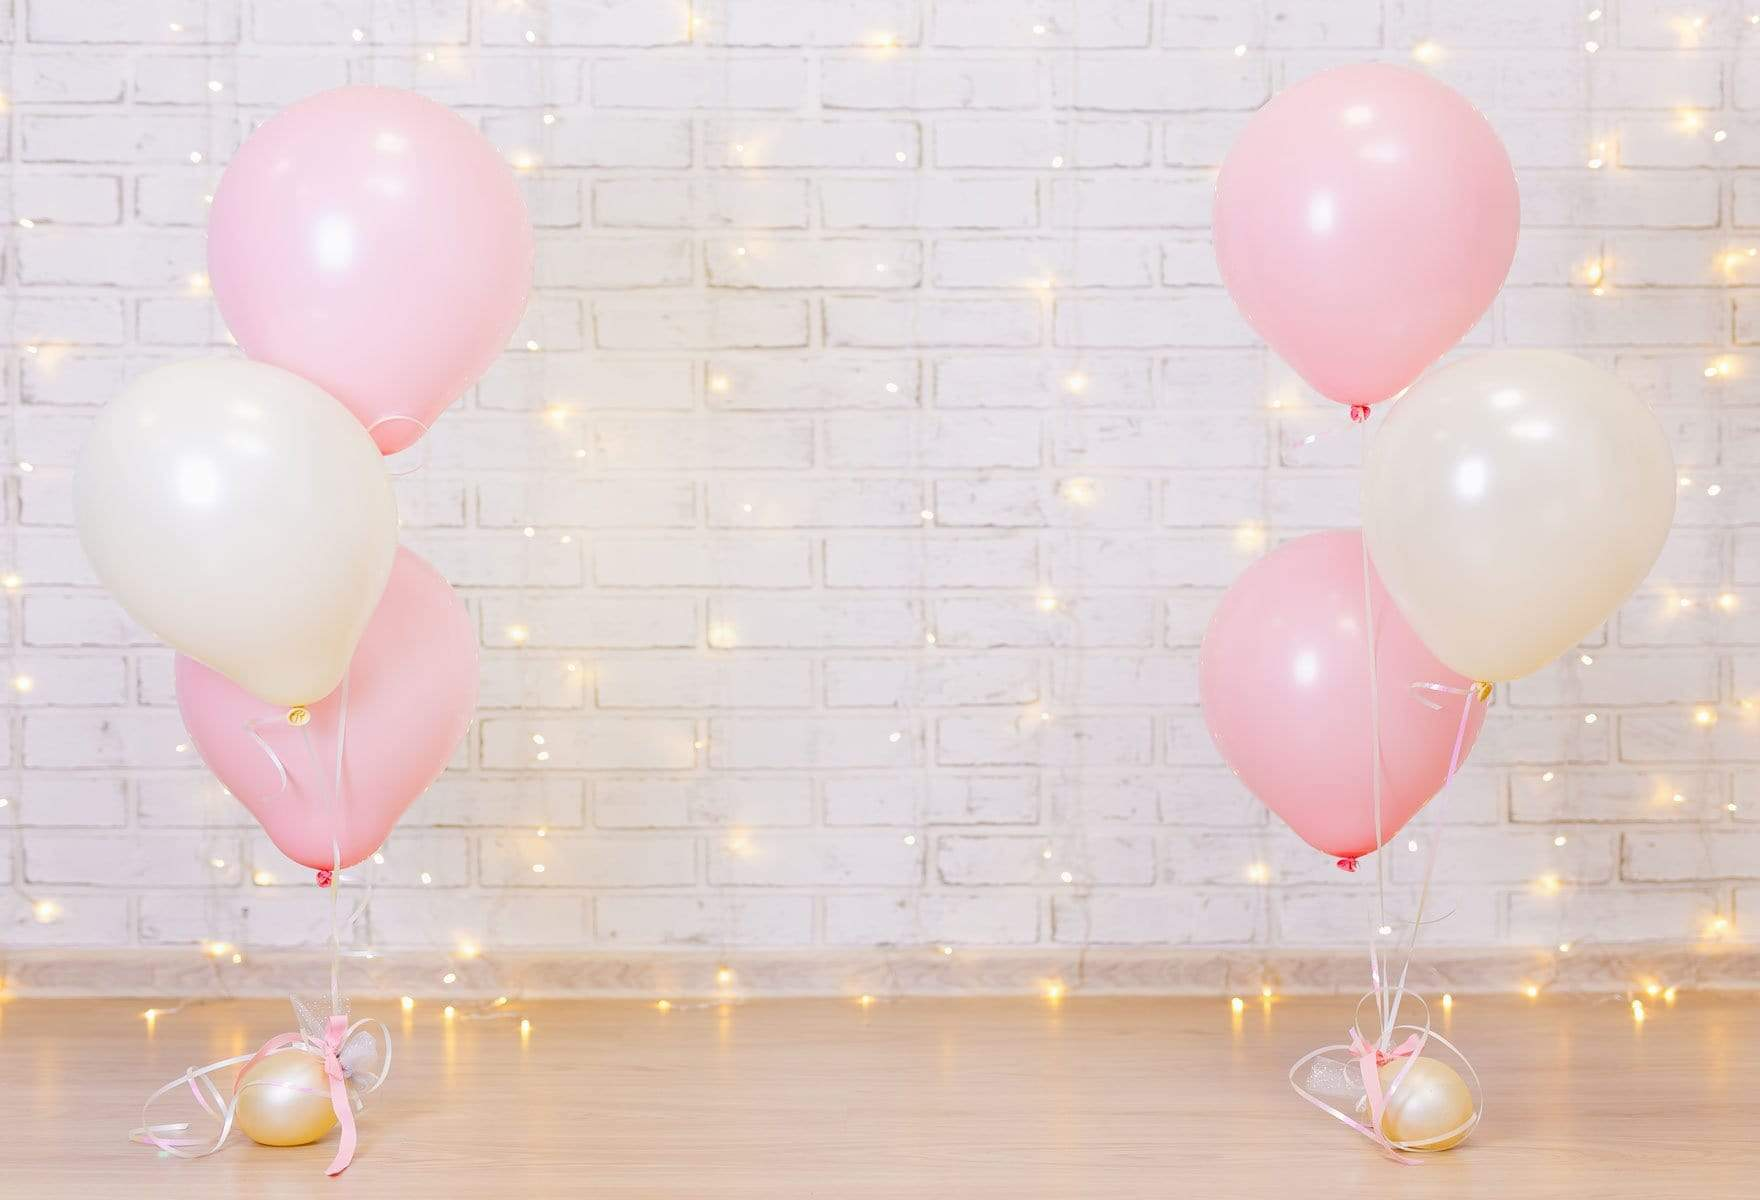 Load image into Gallery viewer, Katebackdrop£ºKate White Brick Wall with Balloons and Decorations Birthday Backdrop for Photography